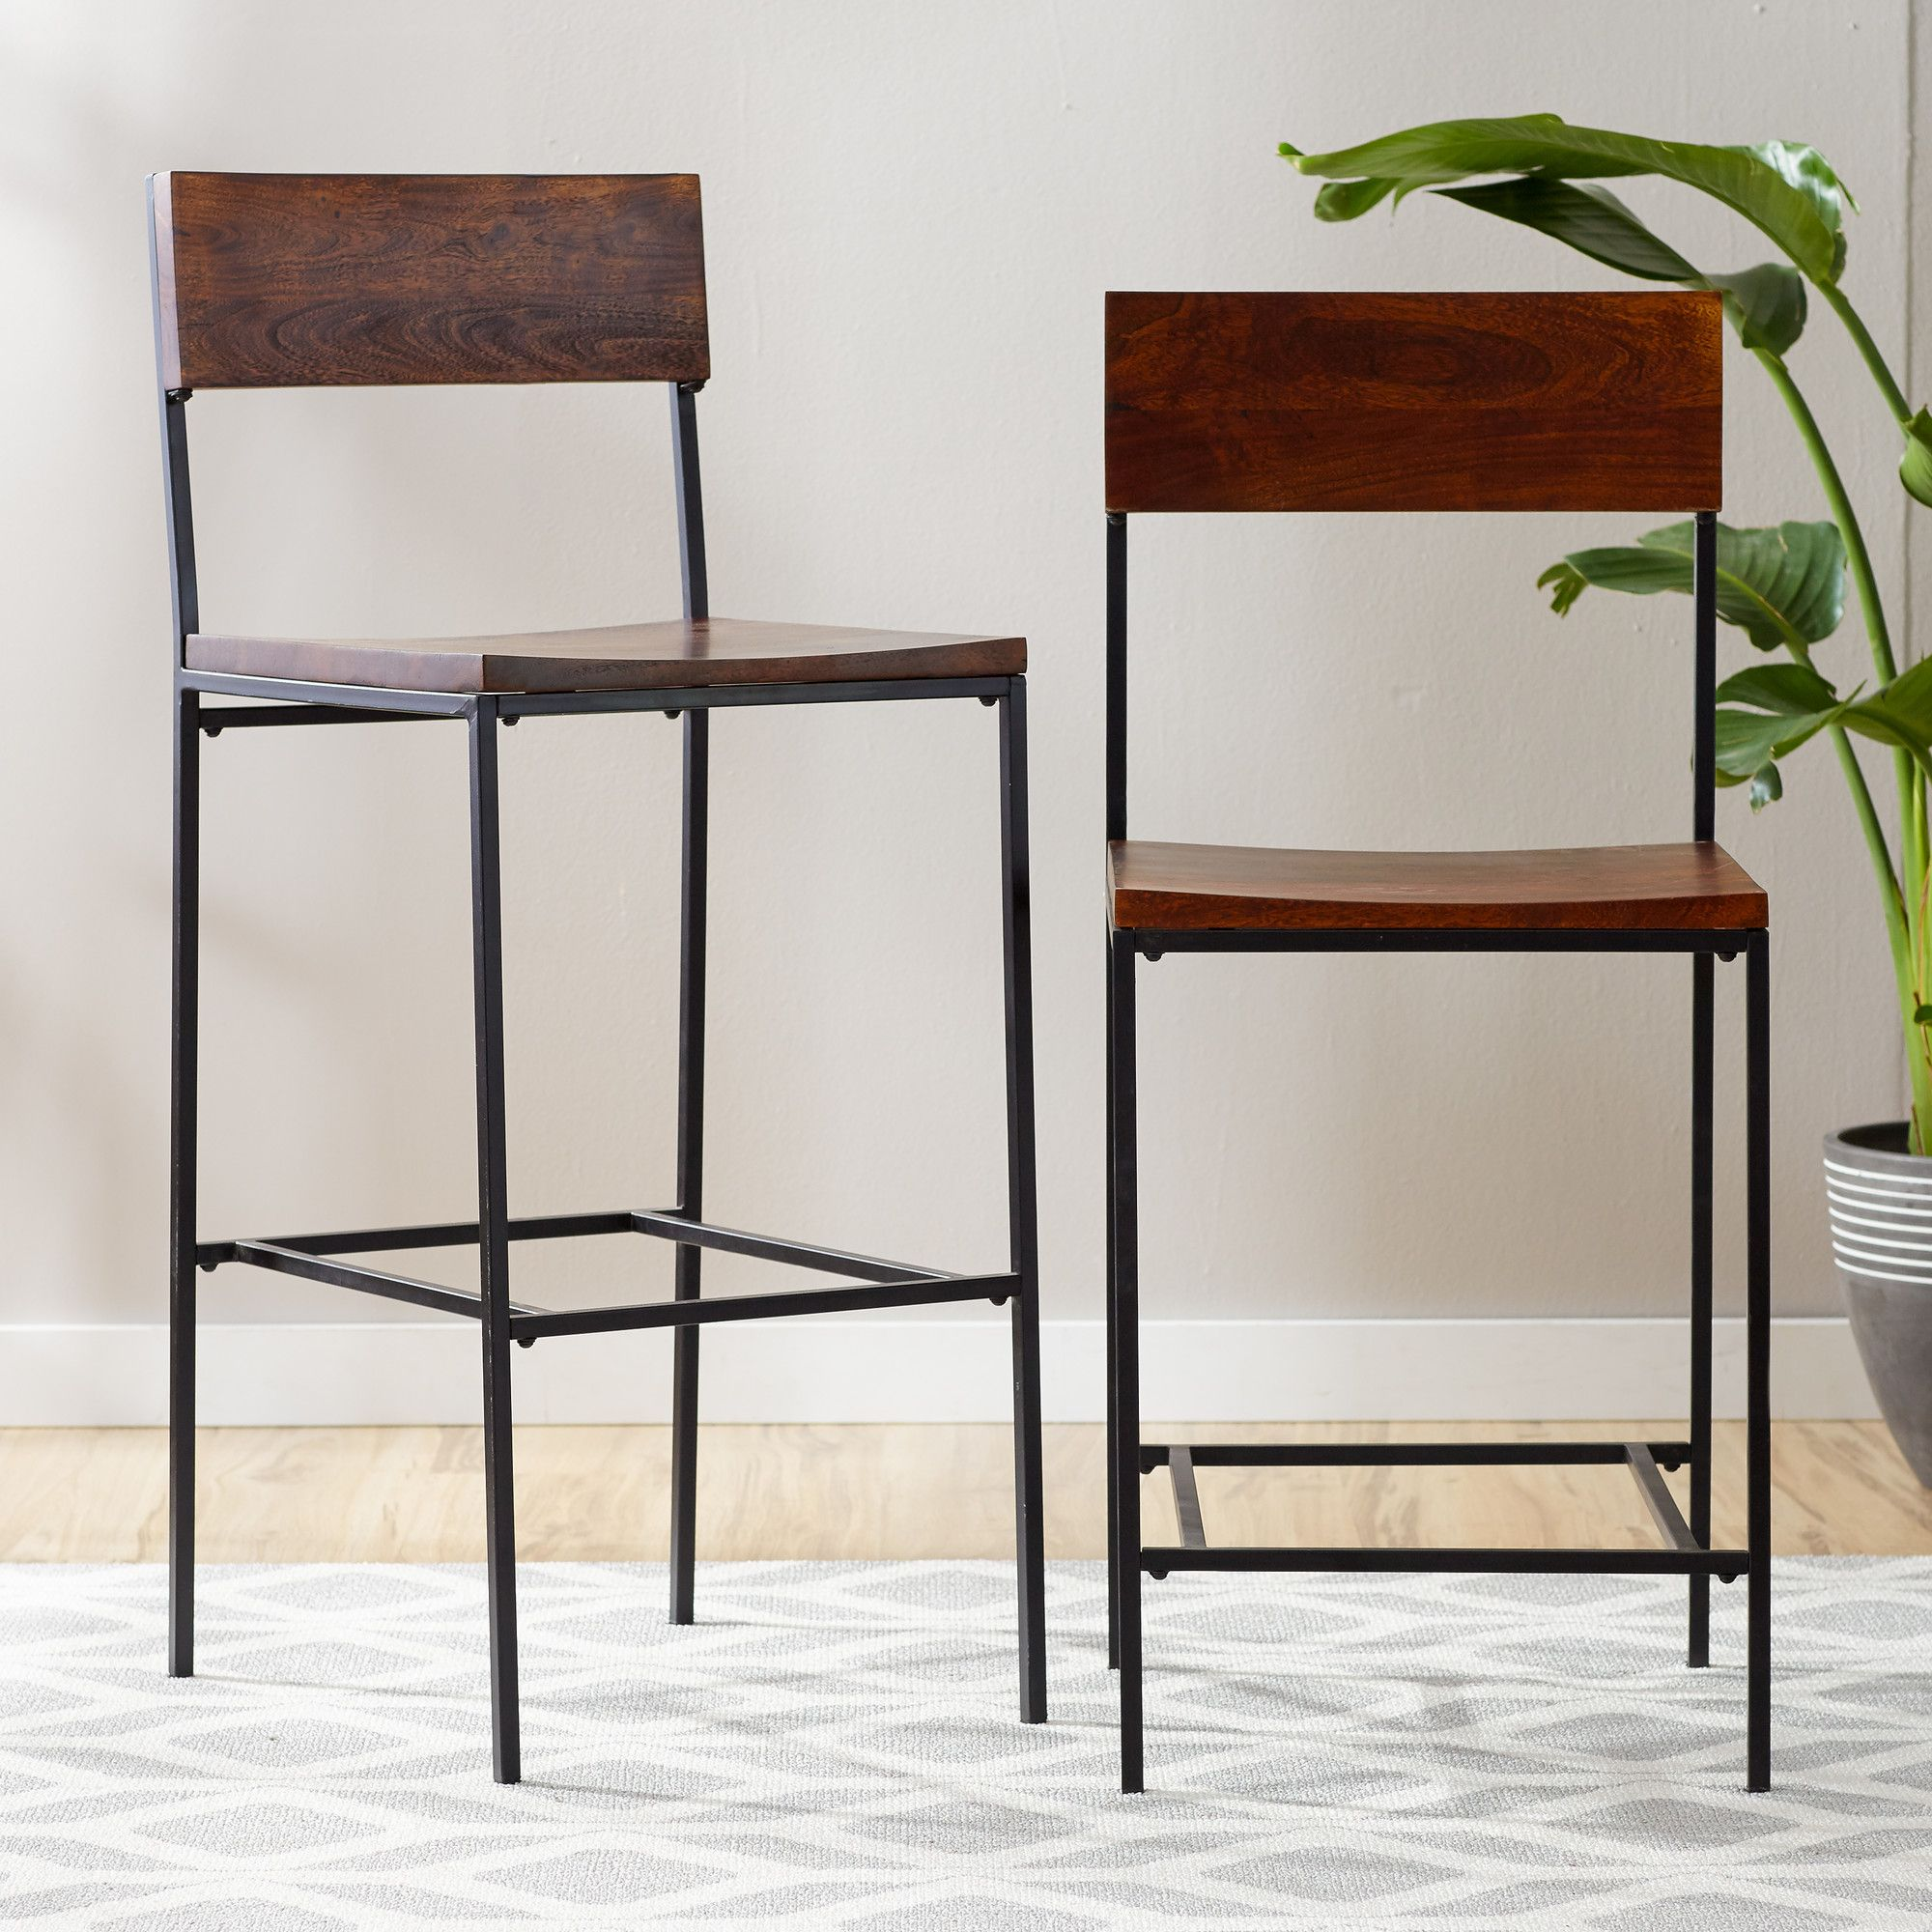 Shop AllModern for Bar Stools & Counter Stools for the best selection in modern design.  Free shipping on all orders over $49.